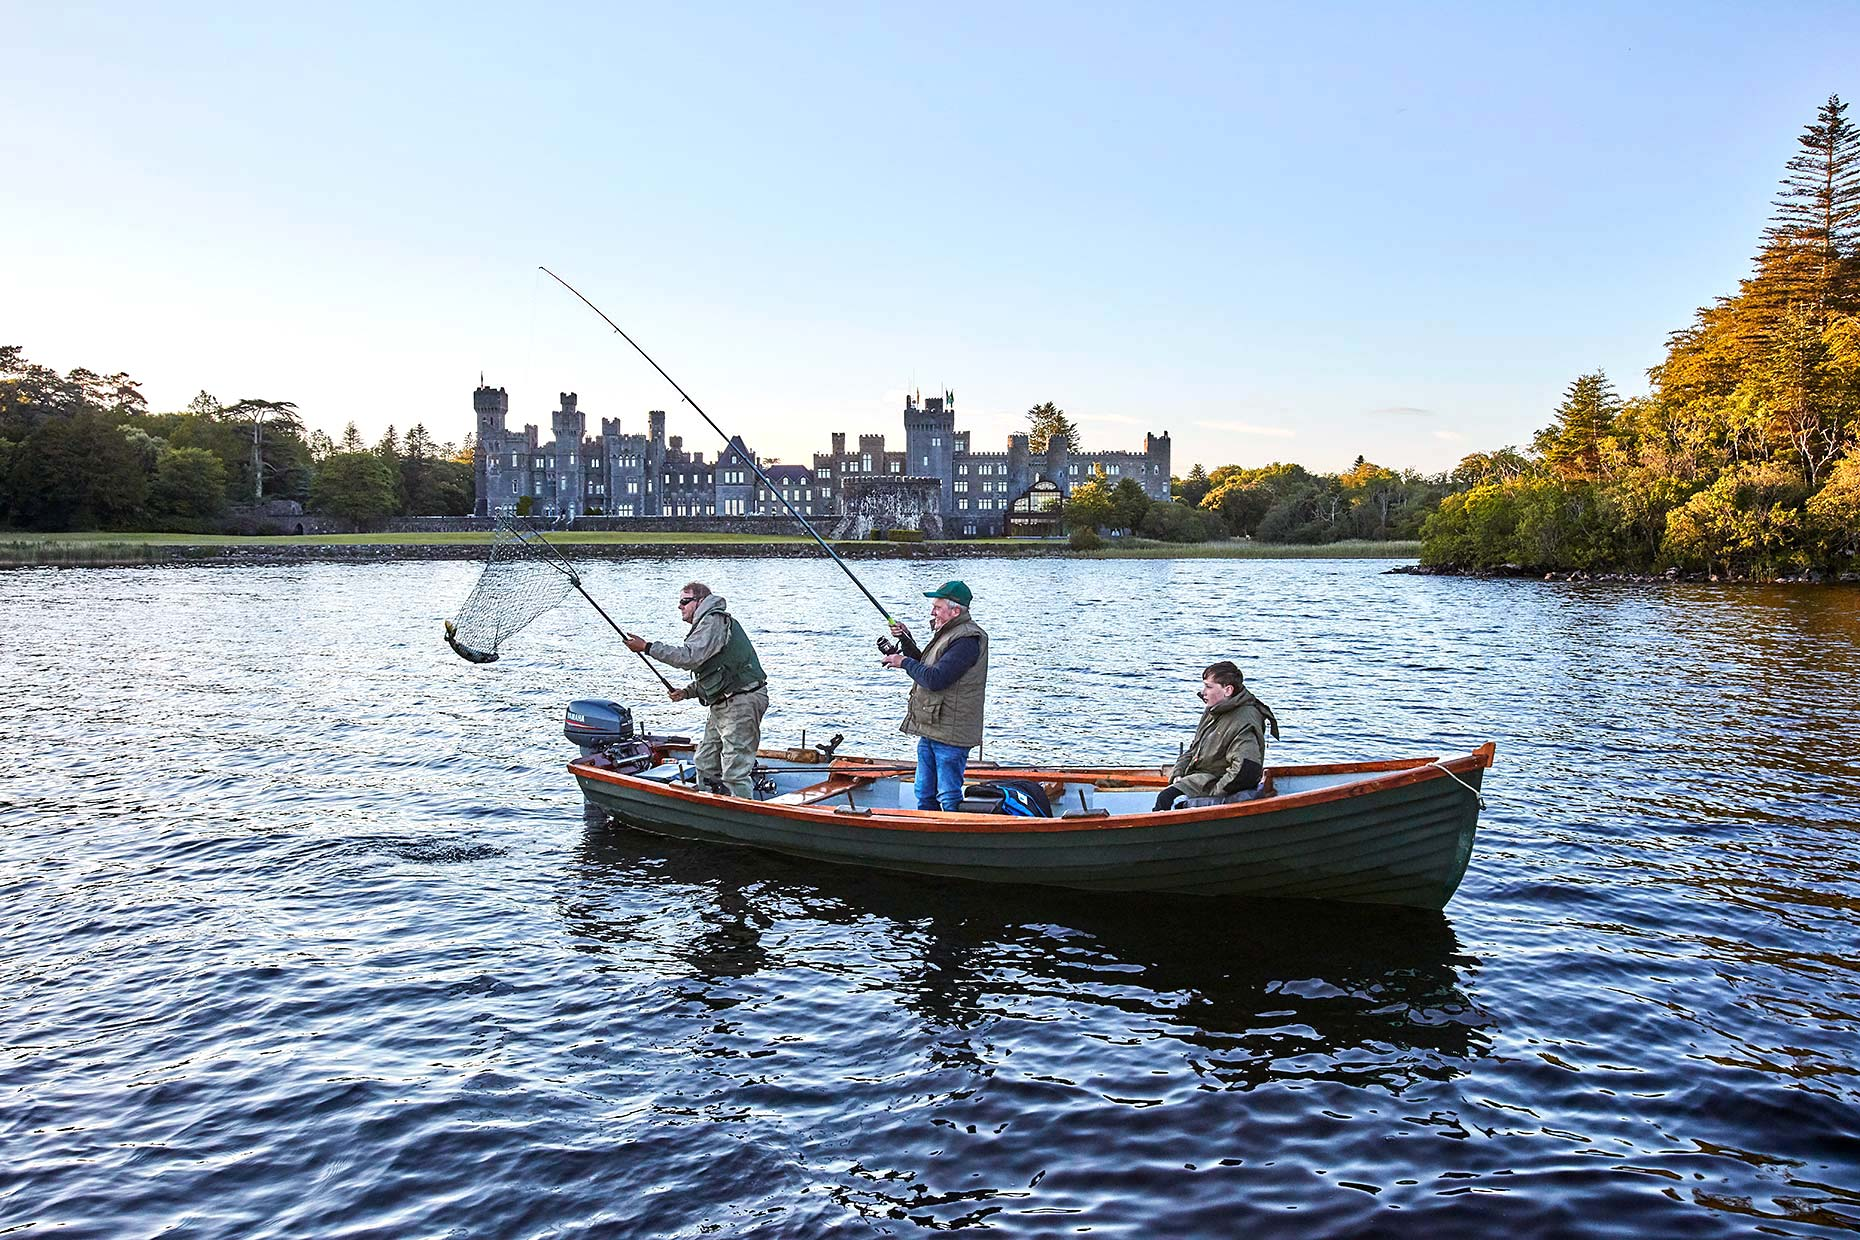 _Brendan_Vacations_Ashford_Castle_17661_1